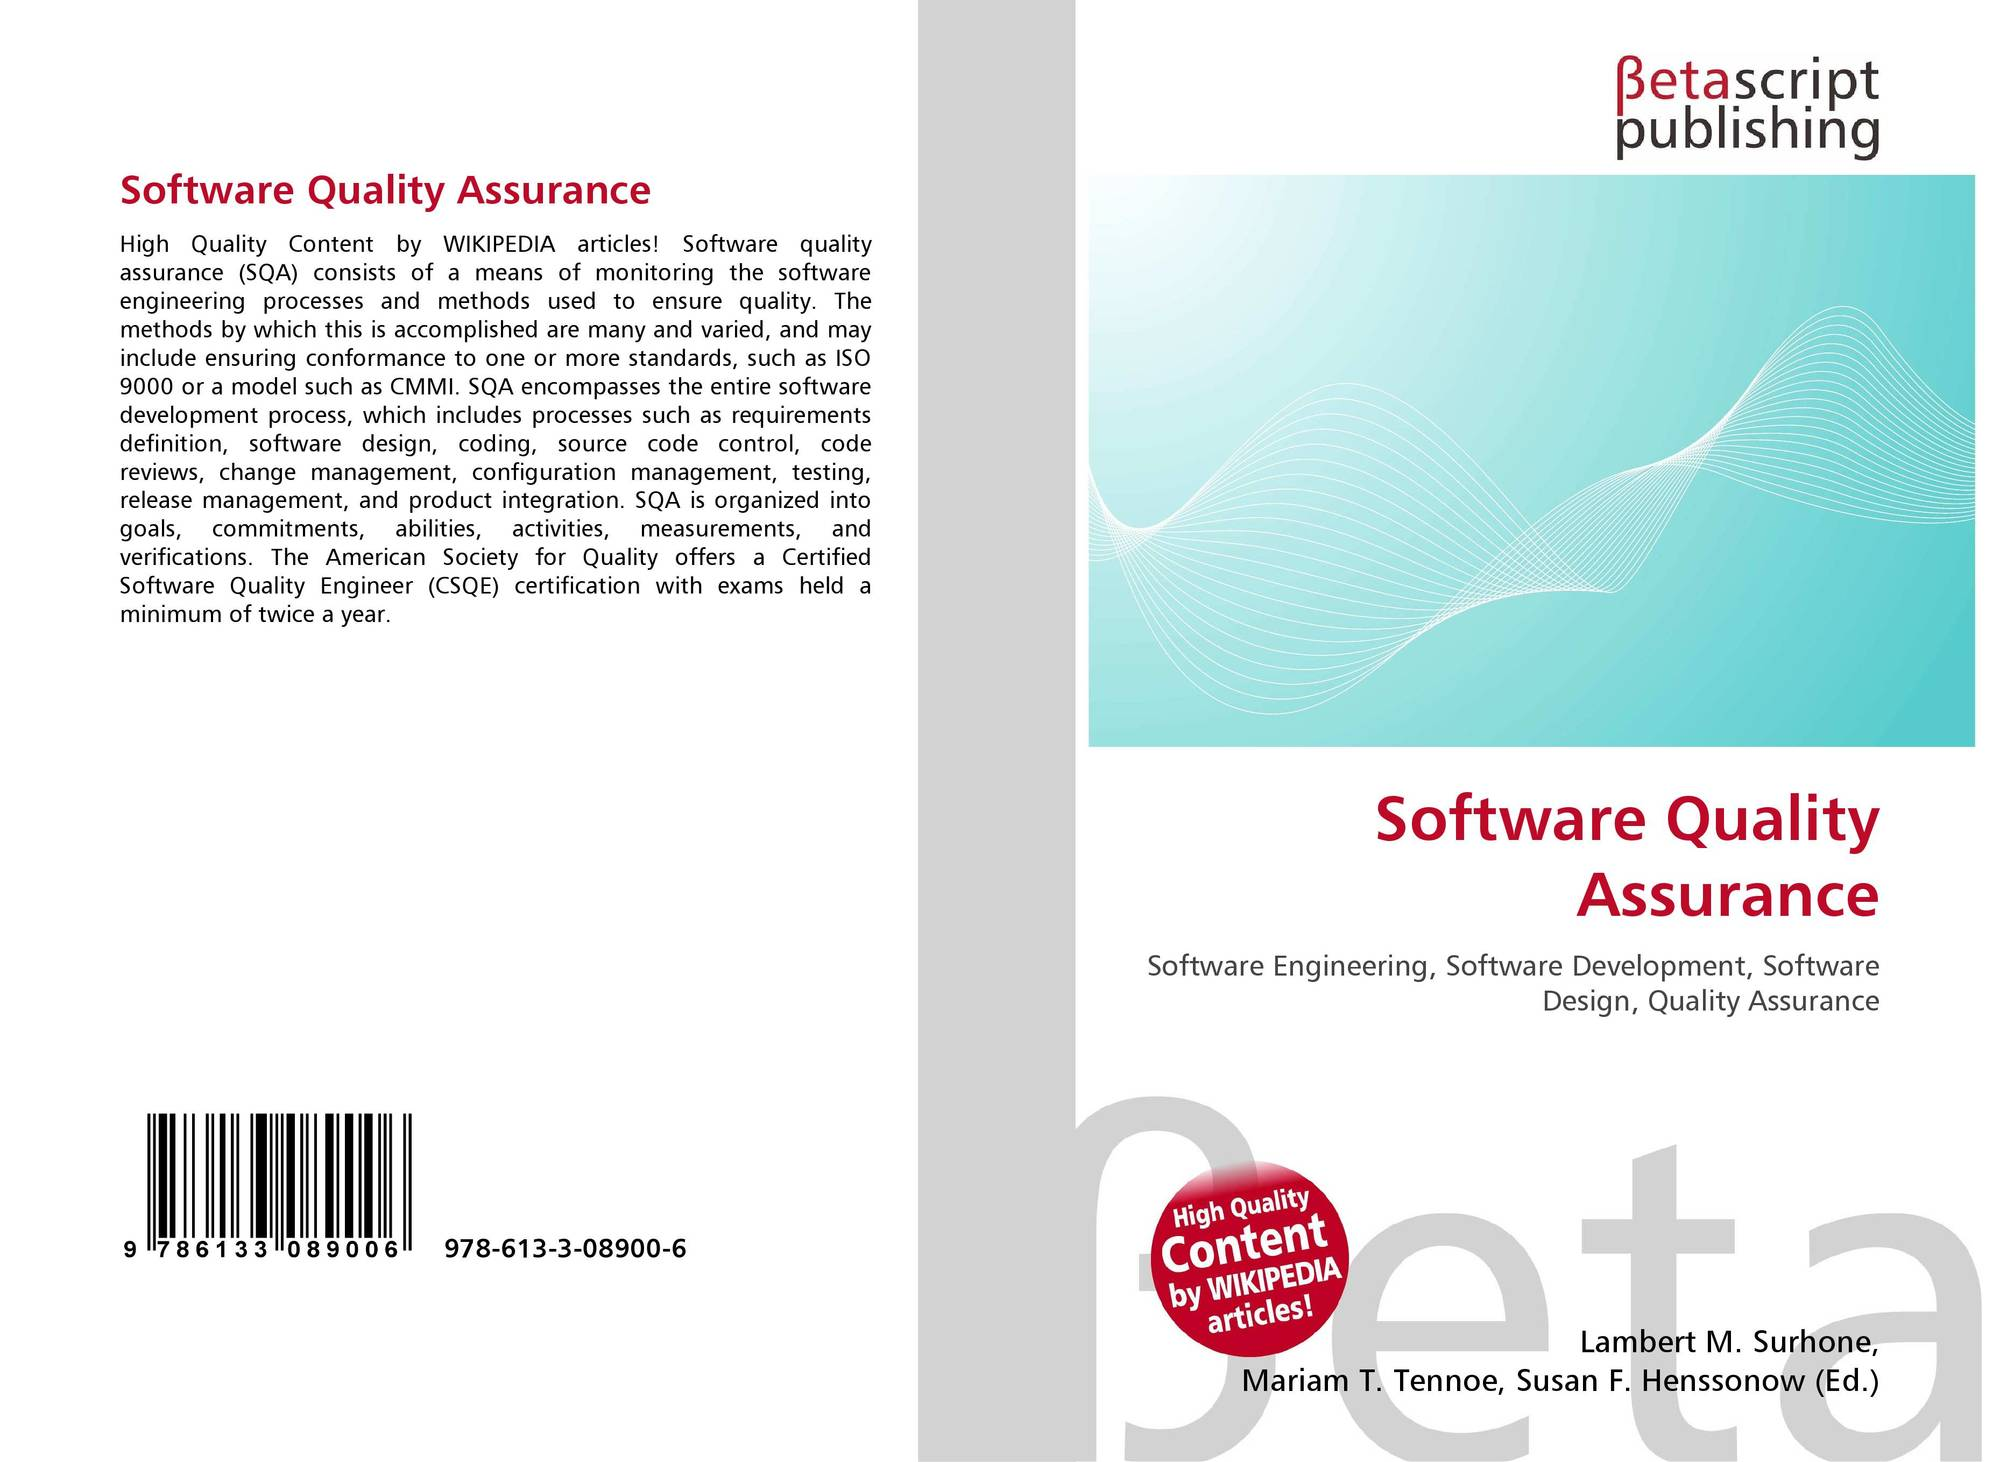 Software Quality Assurance 978 613 3 08900 6 6133089008 9786133089006